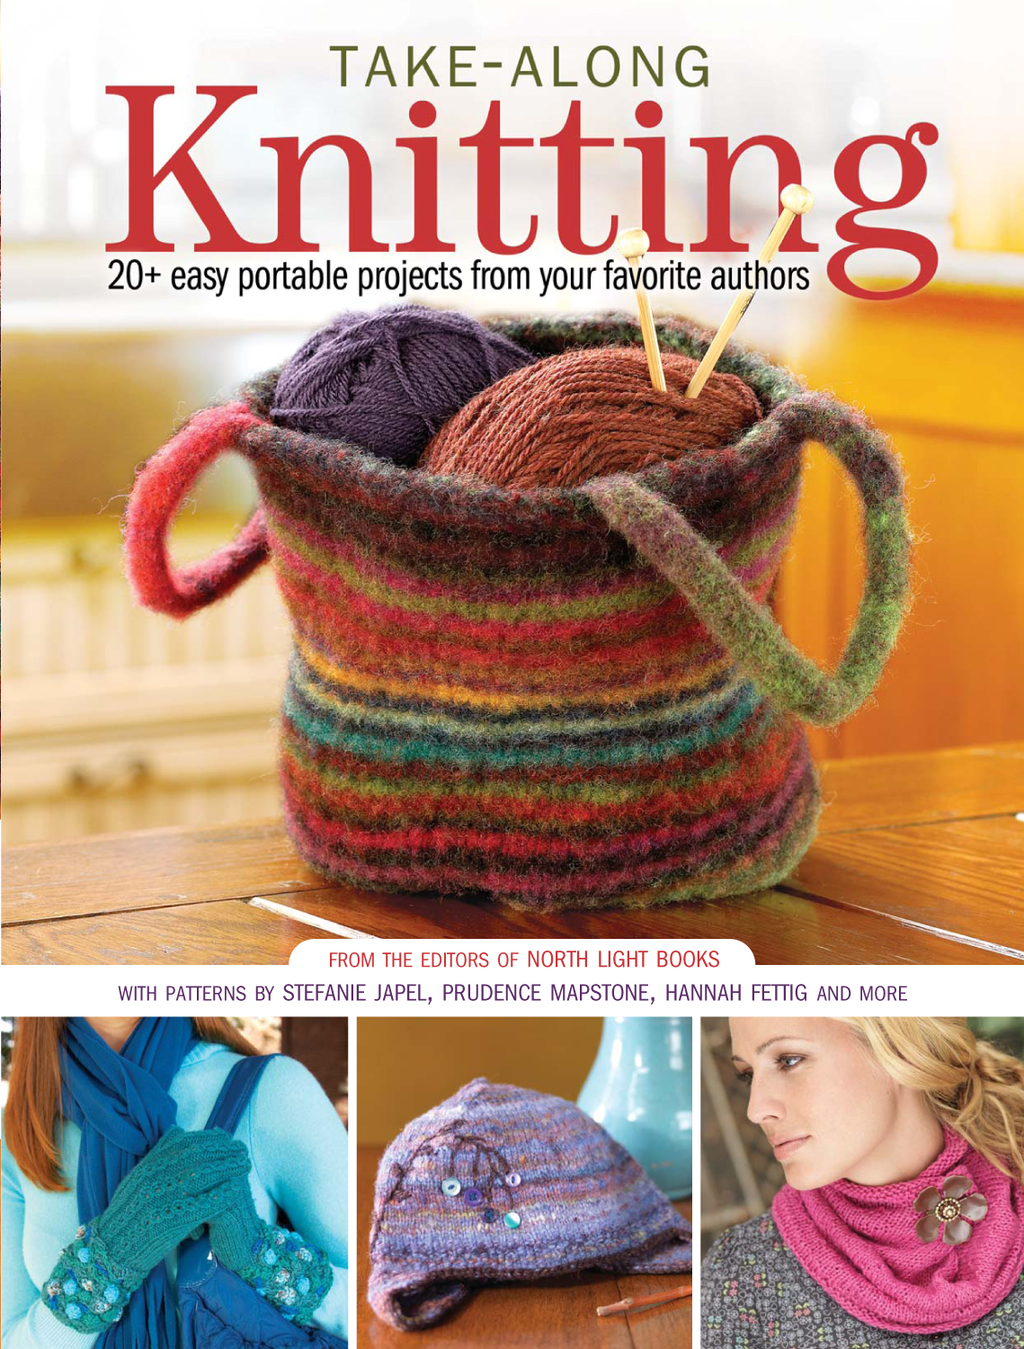 Take-Along Knitting 20+ Easy Portable Projects from Your Favorite Authors